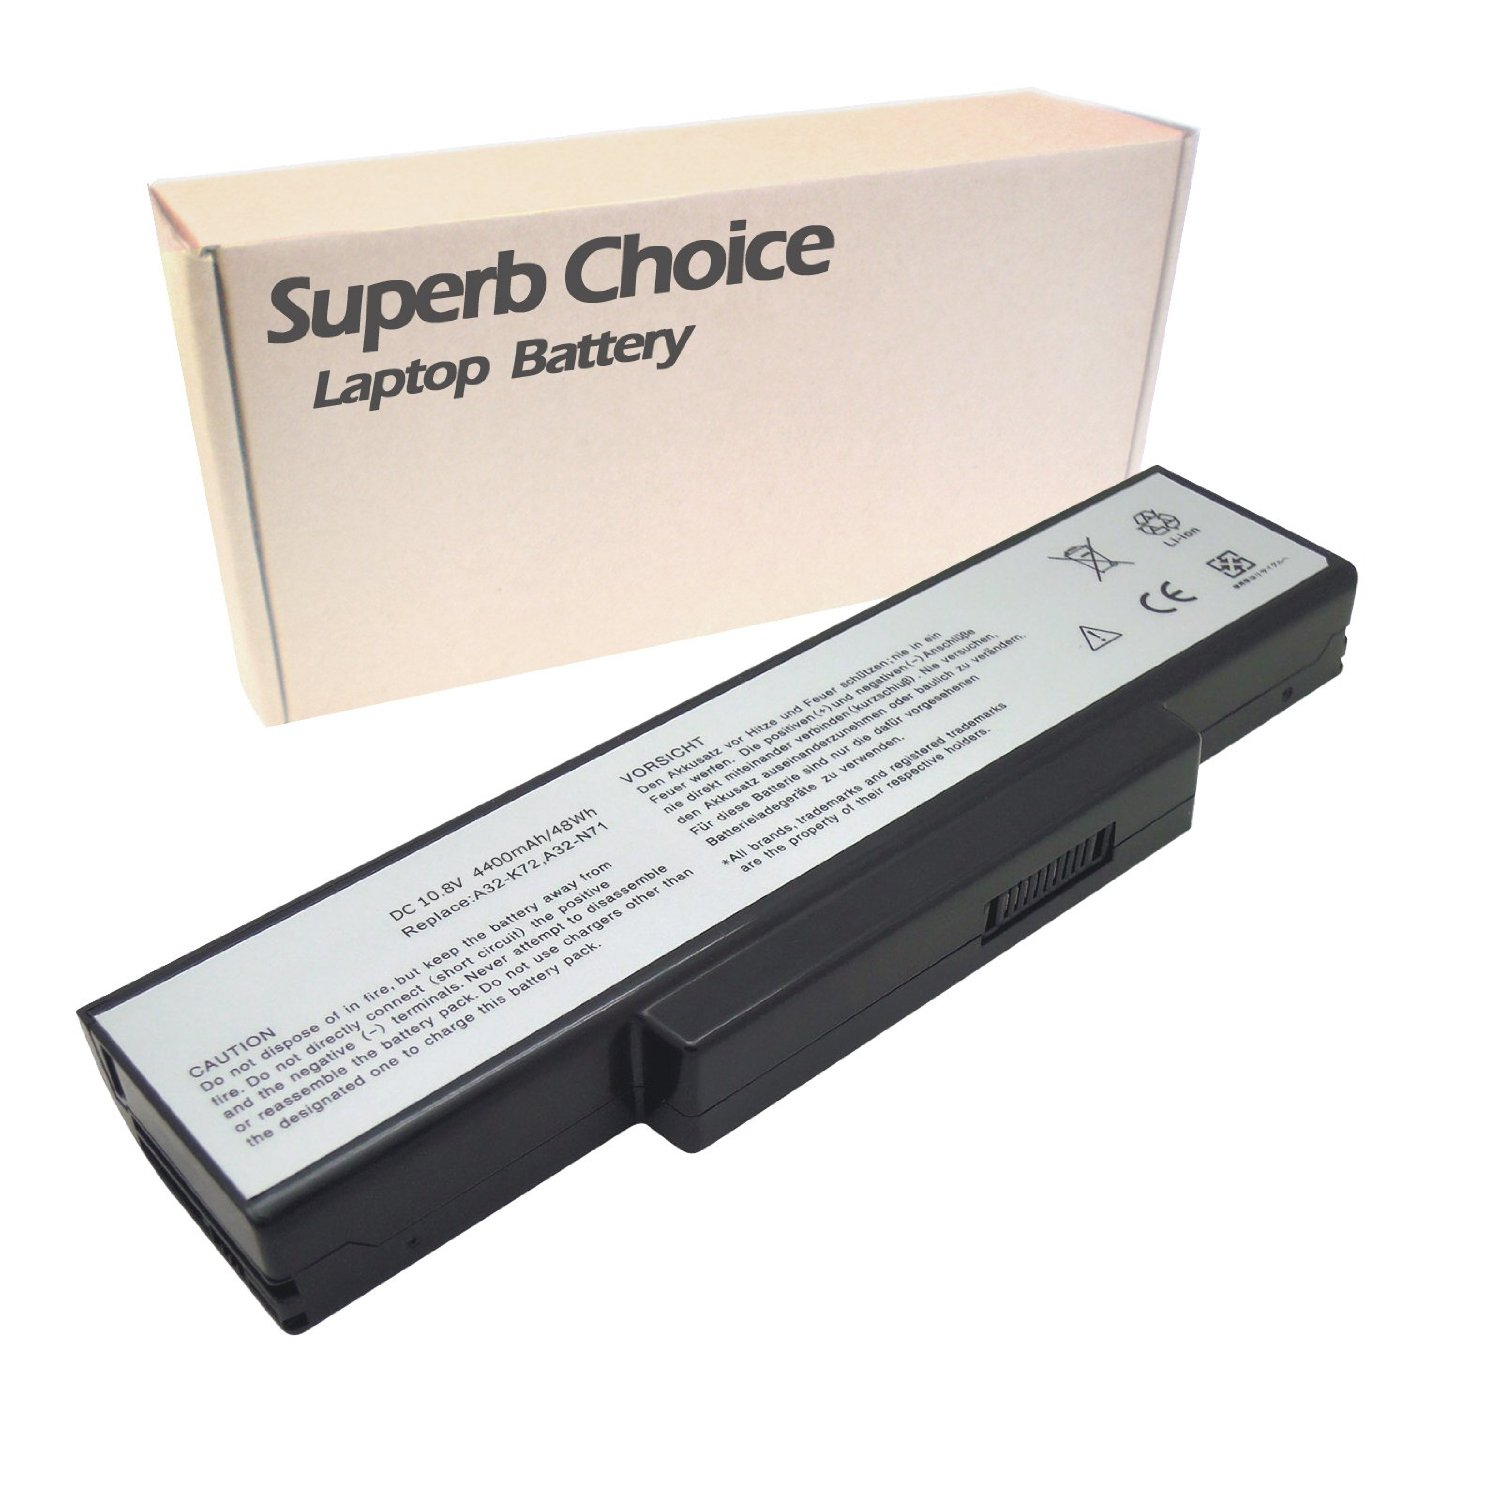 ASUS A32-K72 Laptop Battery - Premium Superb Choice® 6-cell Li-ion battery